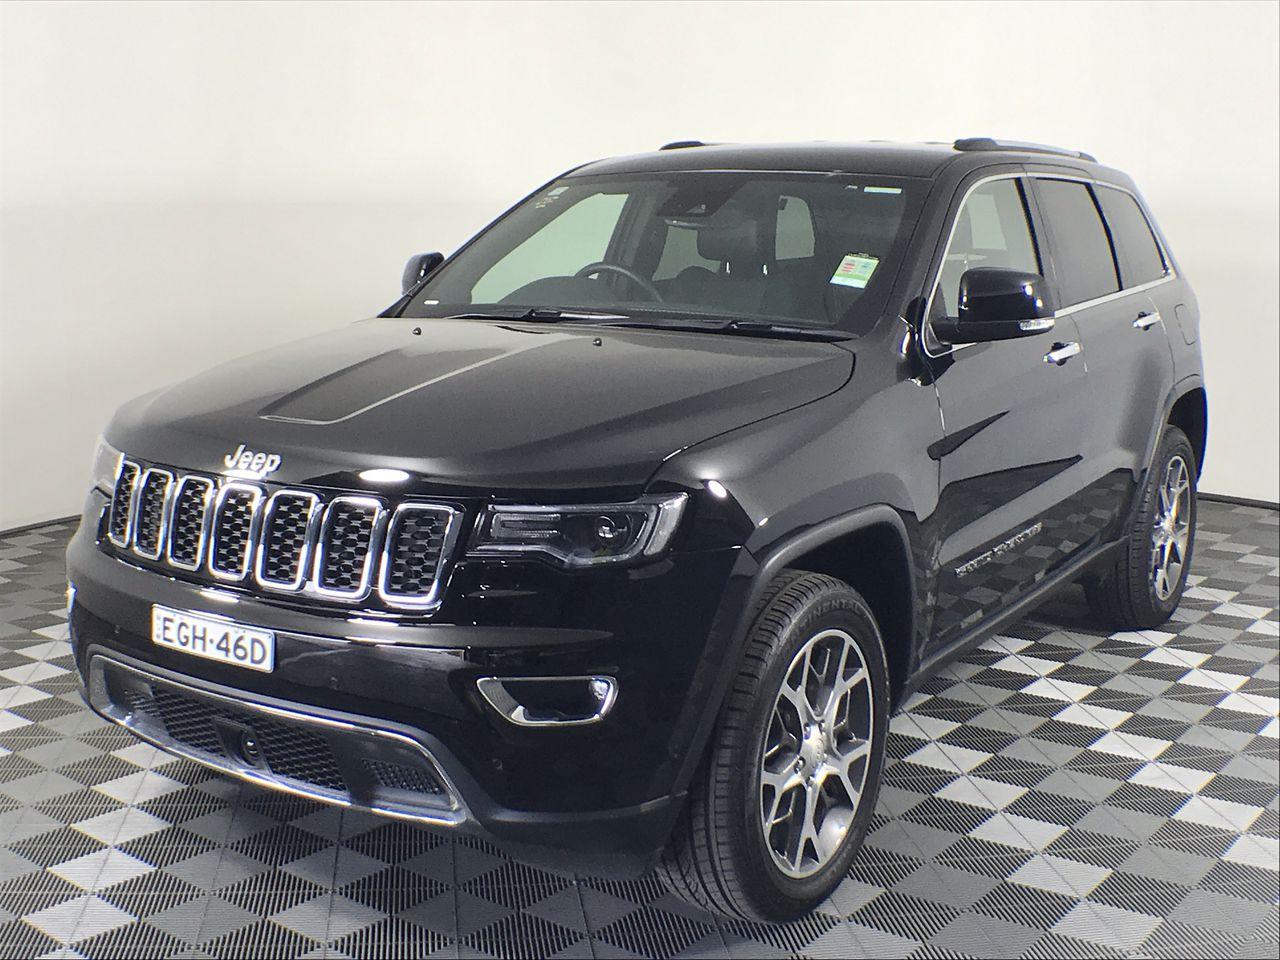 2019 Jeep Grand Cherokee Limited (4x4) WK Automatic - 8 Speed Wagon